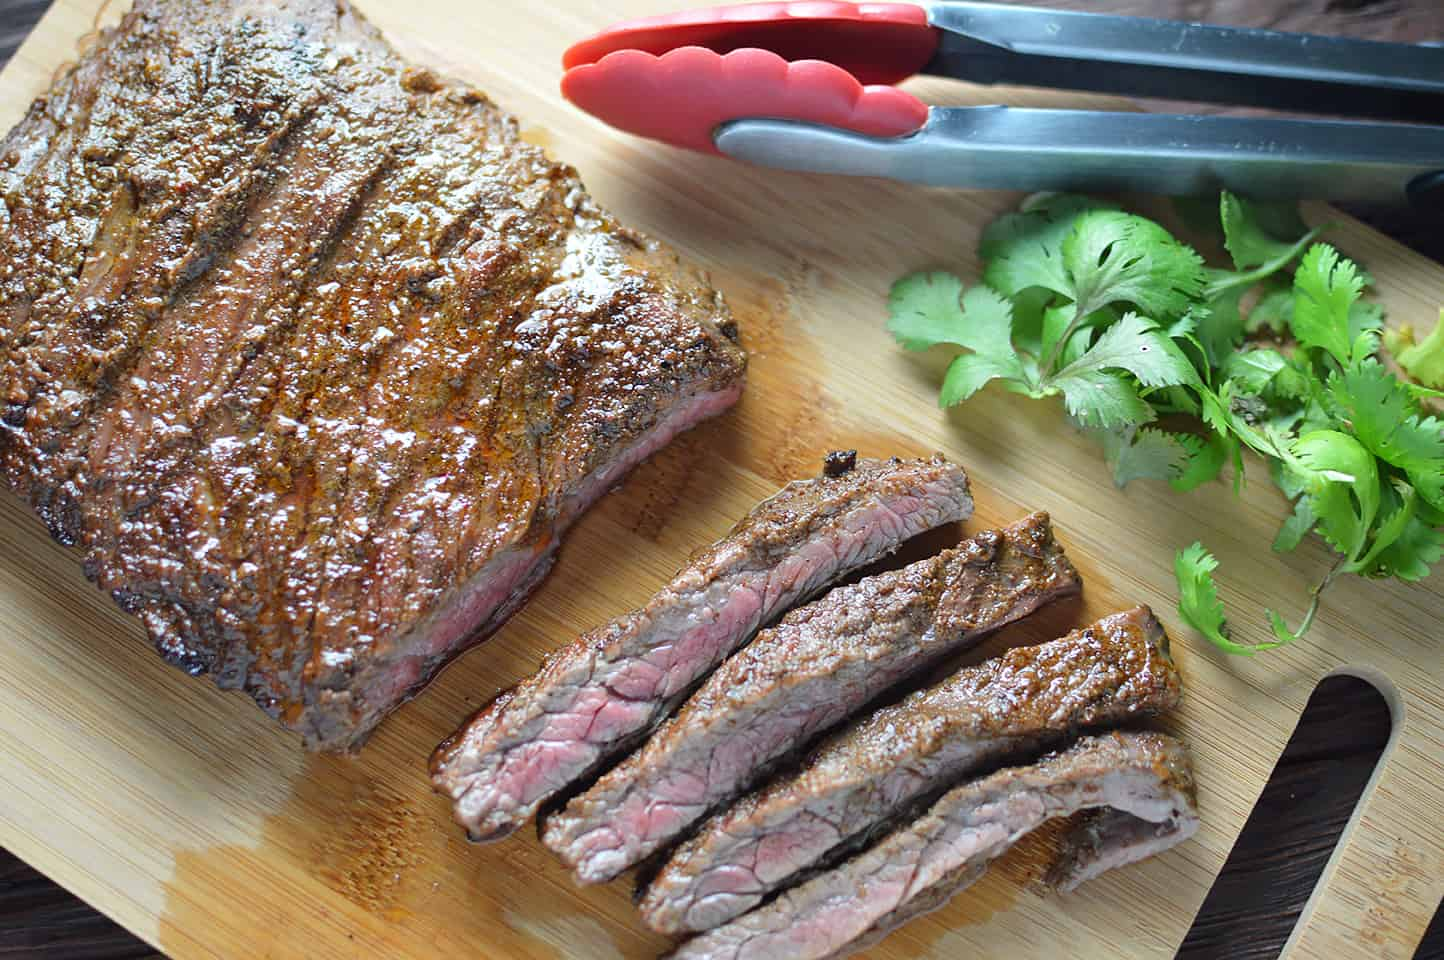 Overhead on the juicy Citrus Marinated Skirt Steaks with a bit of parsley on the side